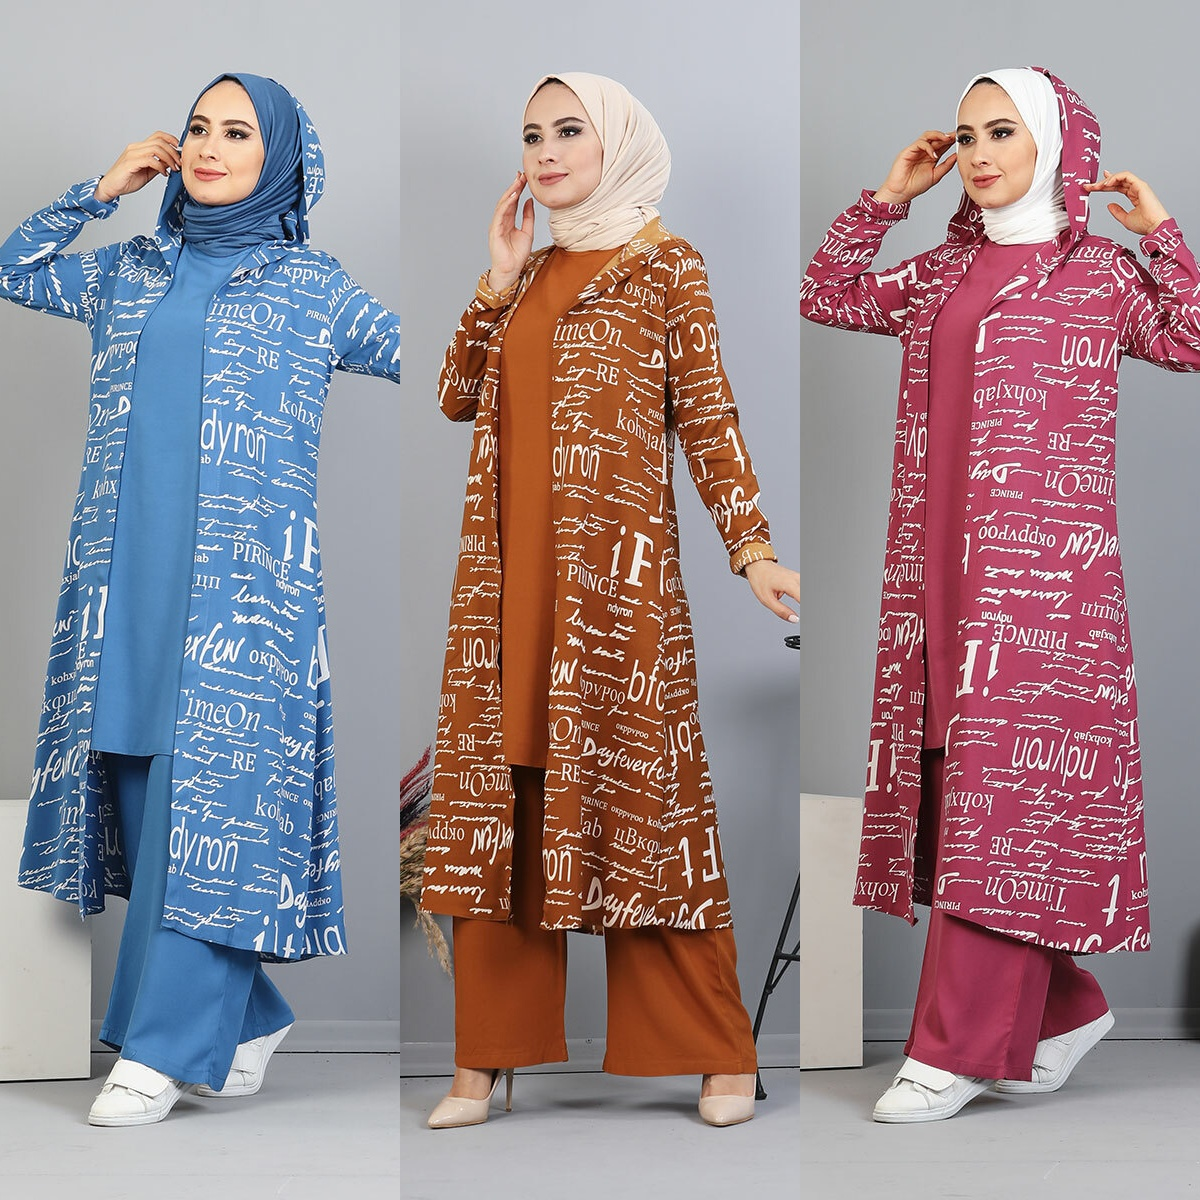 3 Piece Sets Women Hooded Tracksuit Patterned Long Hoodie + Pants Jogging + Solid Top Over Plus Size Suits Muslim Sportswear Fem